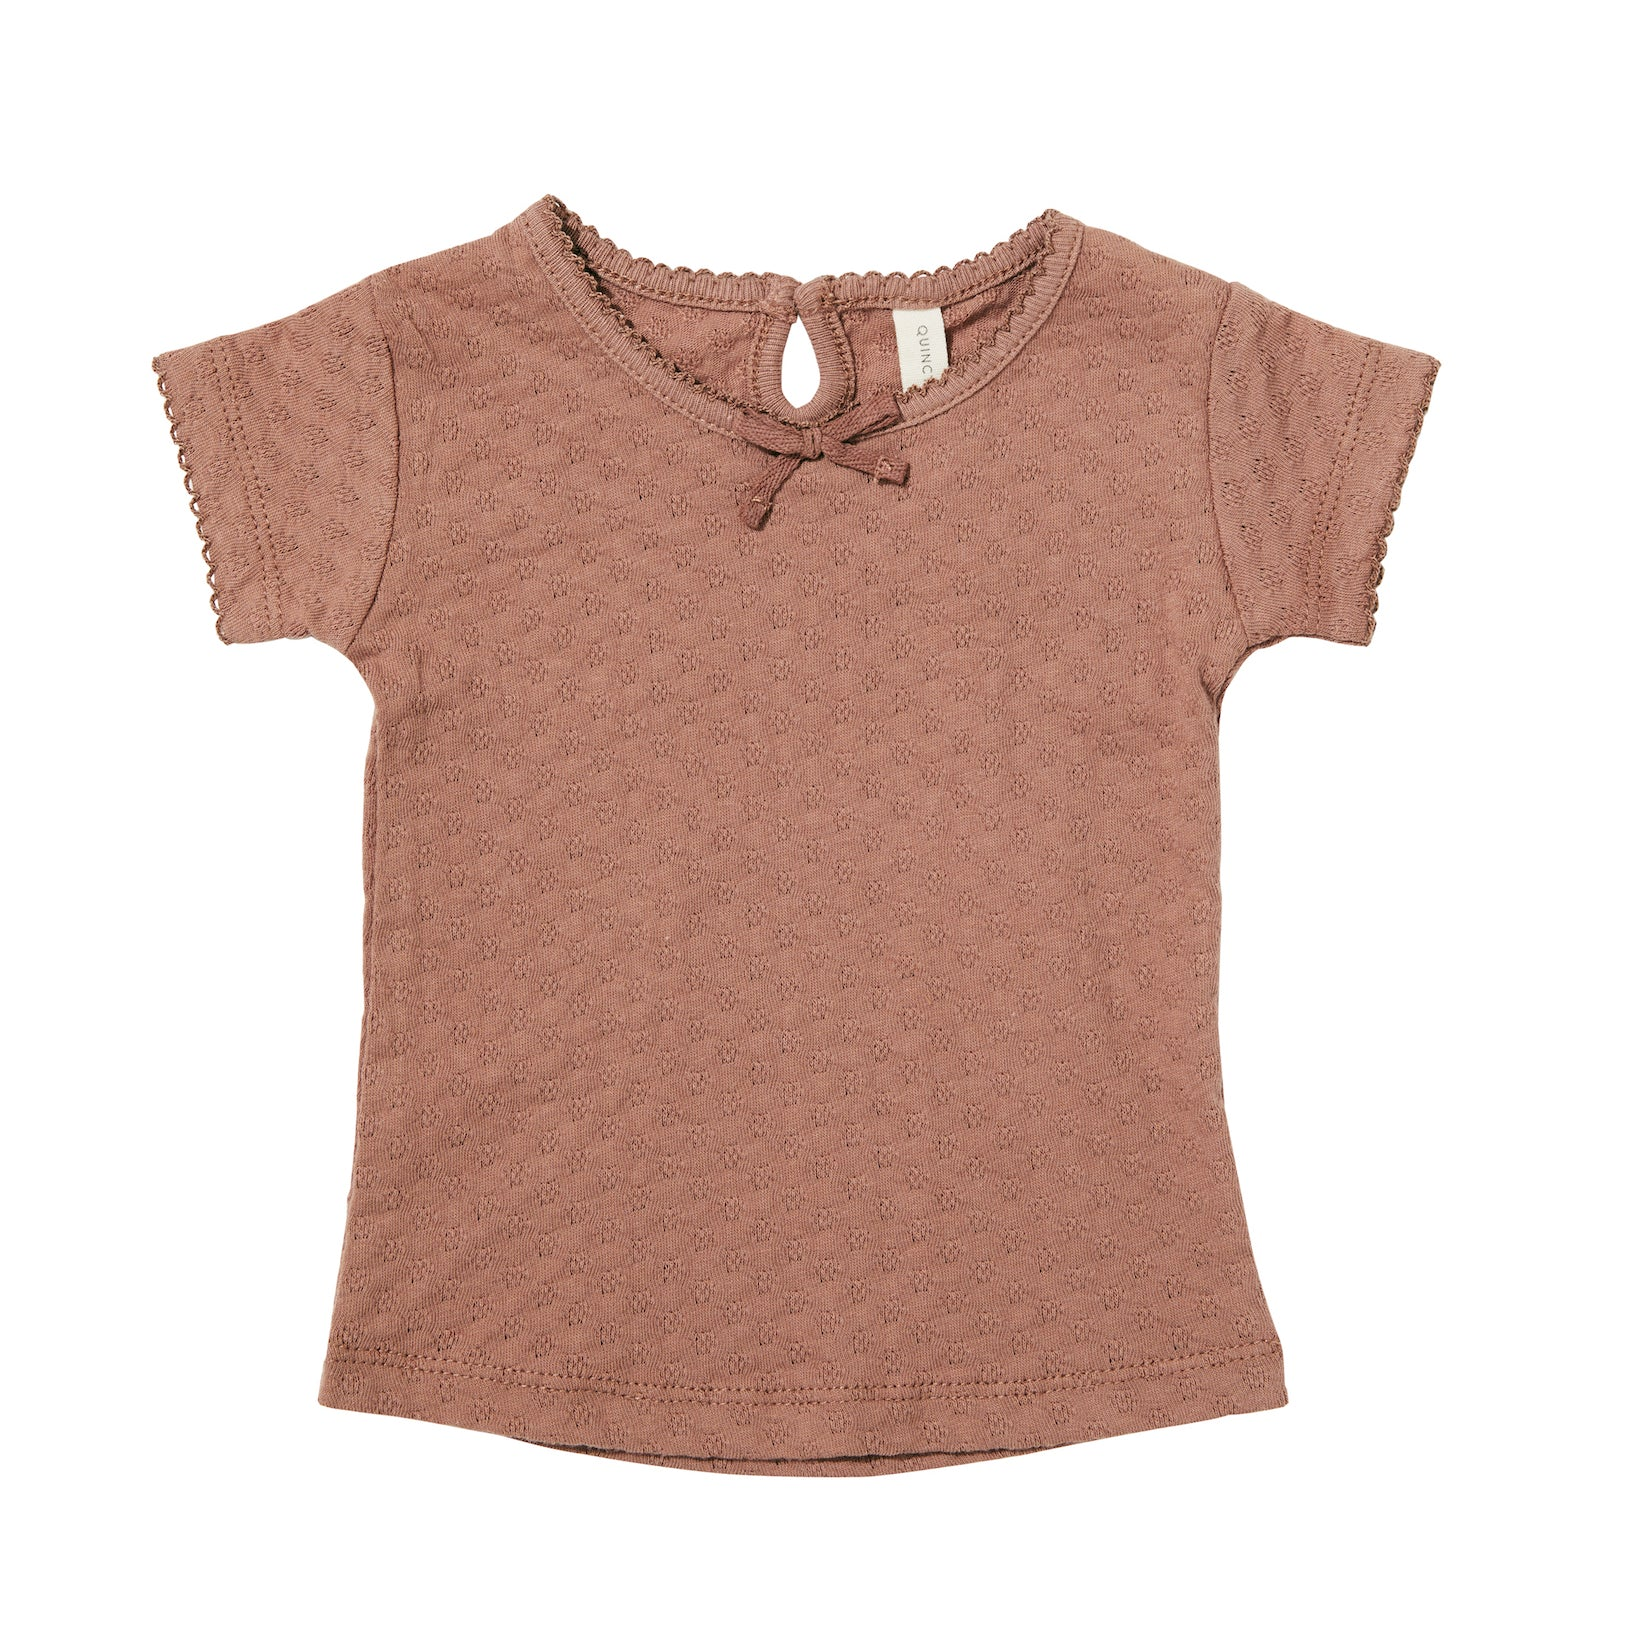 Quincy Mae organic cotton pointelle tee - clay